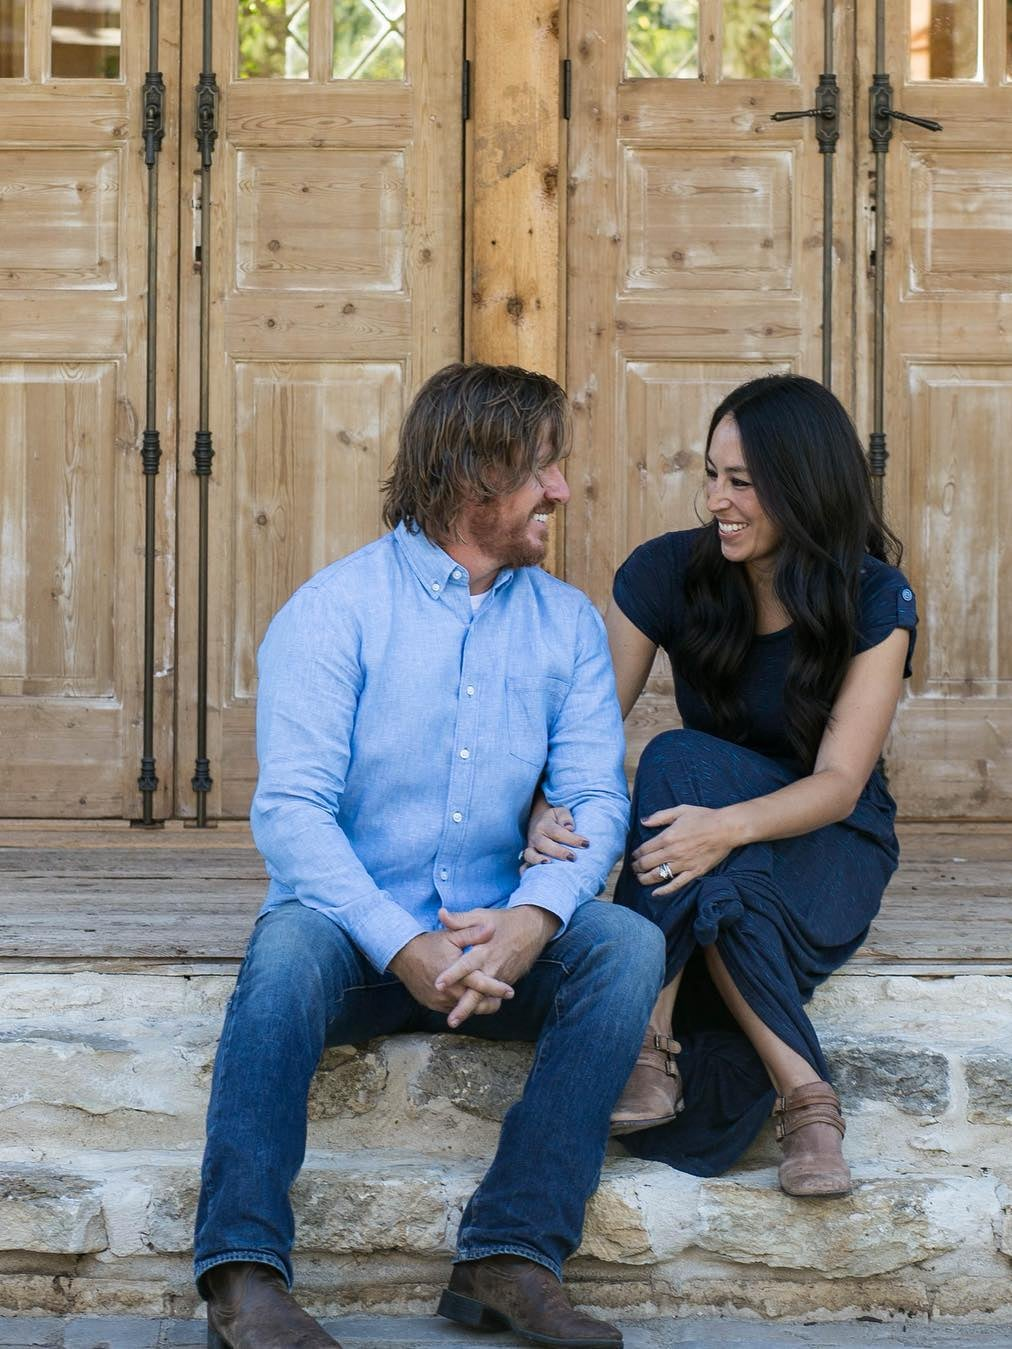 chip and joanna gaines sitting on steps looking at each other